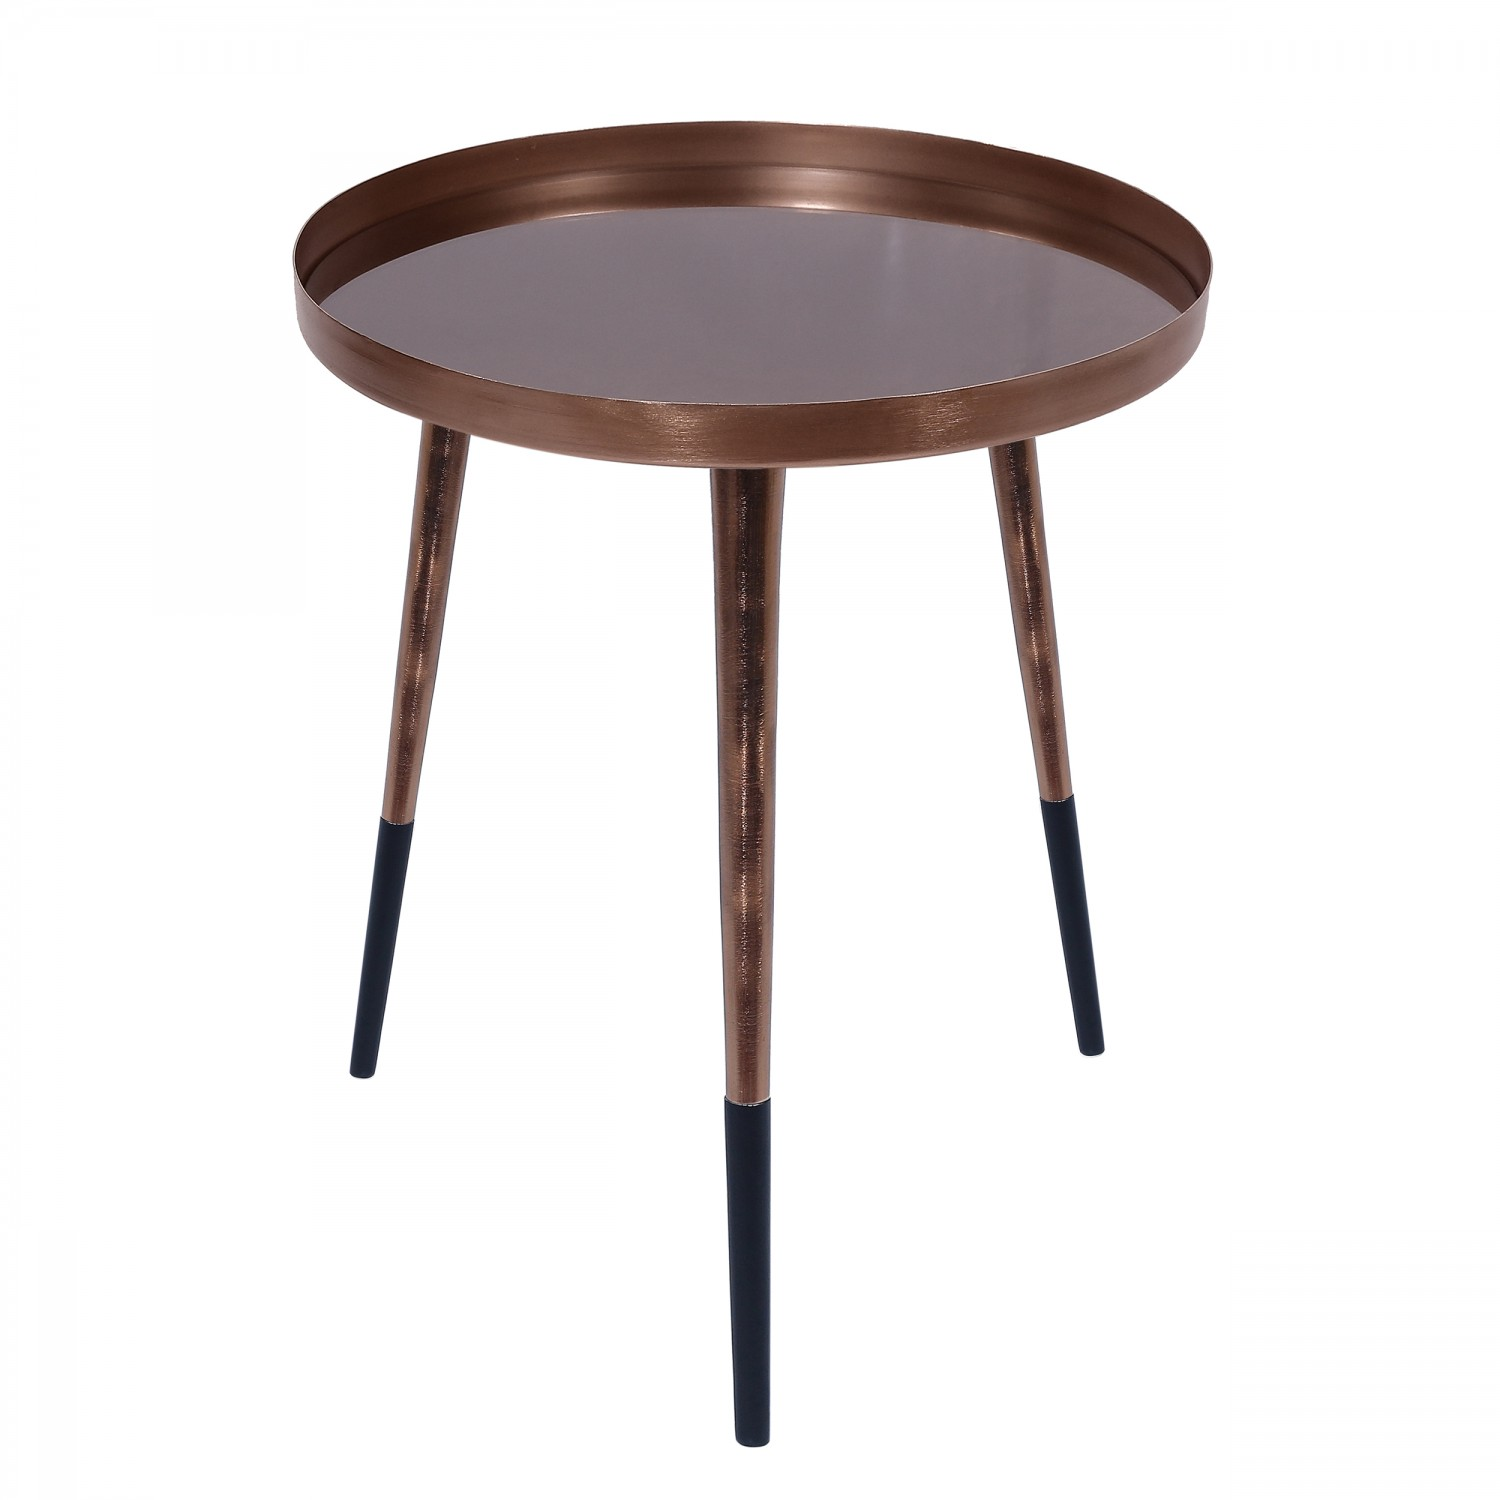 Table Basse Cuivre Table Basse Ronde Hovan Cuivre Koya Design